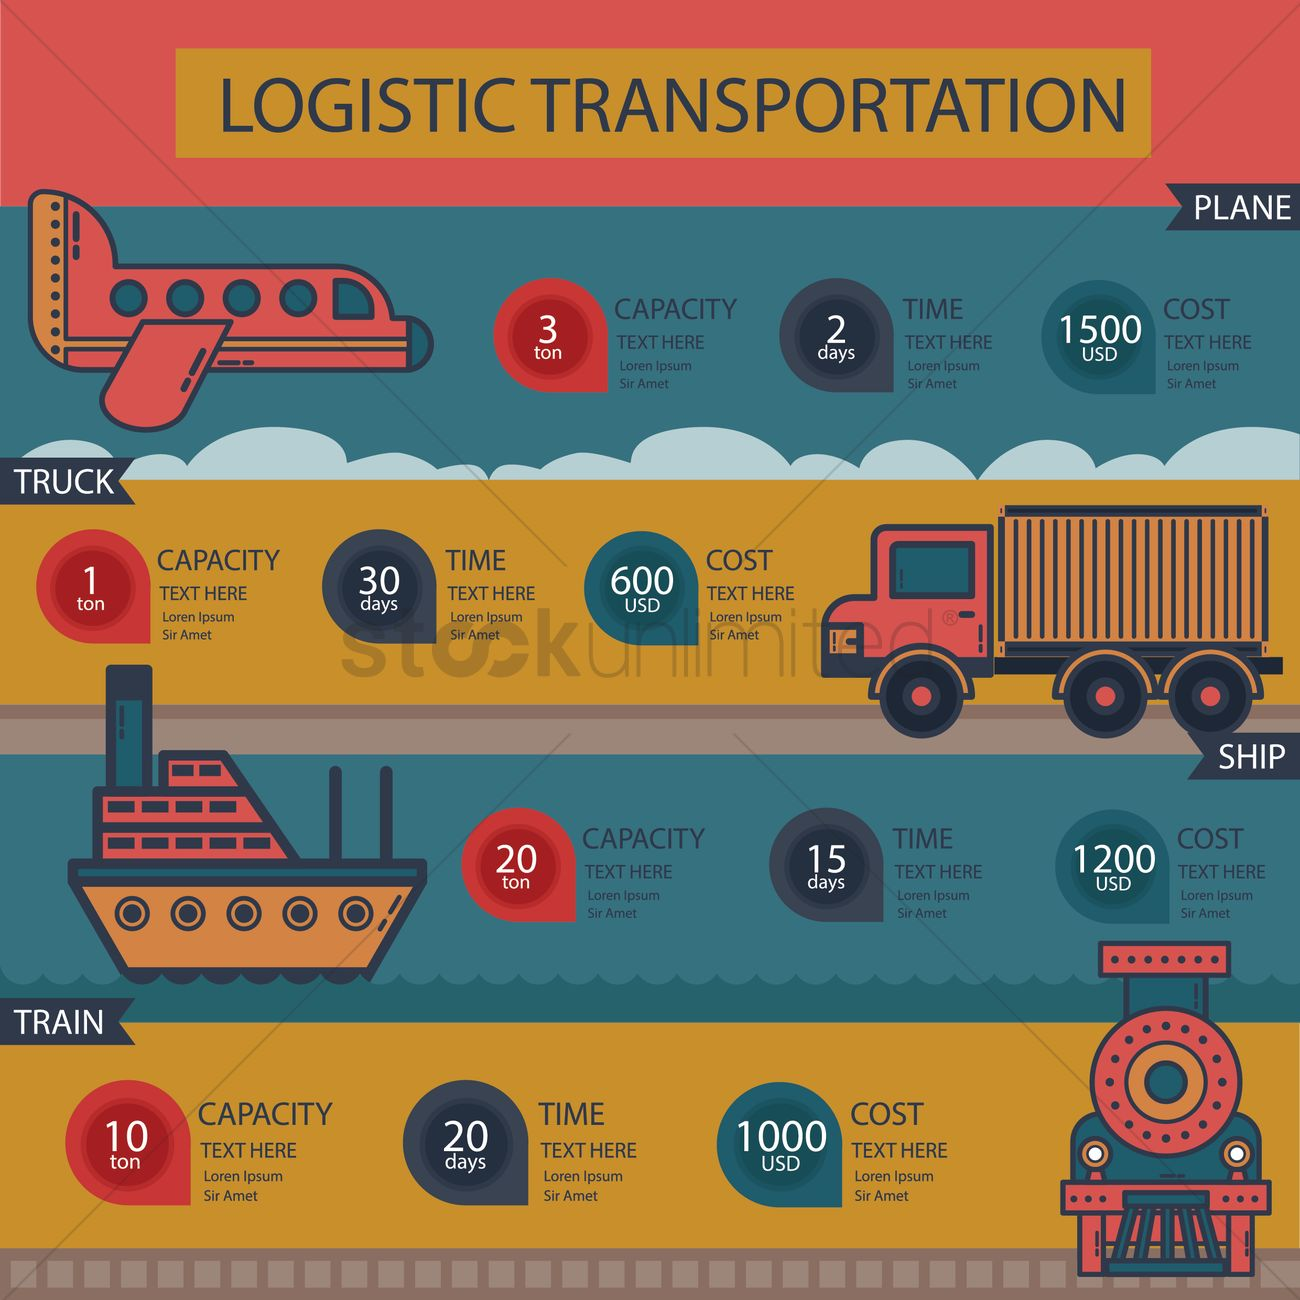 Logistic transportation Vector Image - 1306159 | StockUnlimited